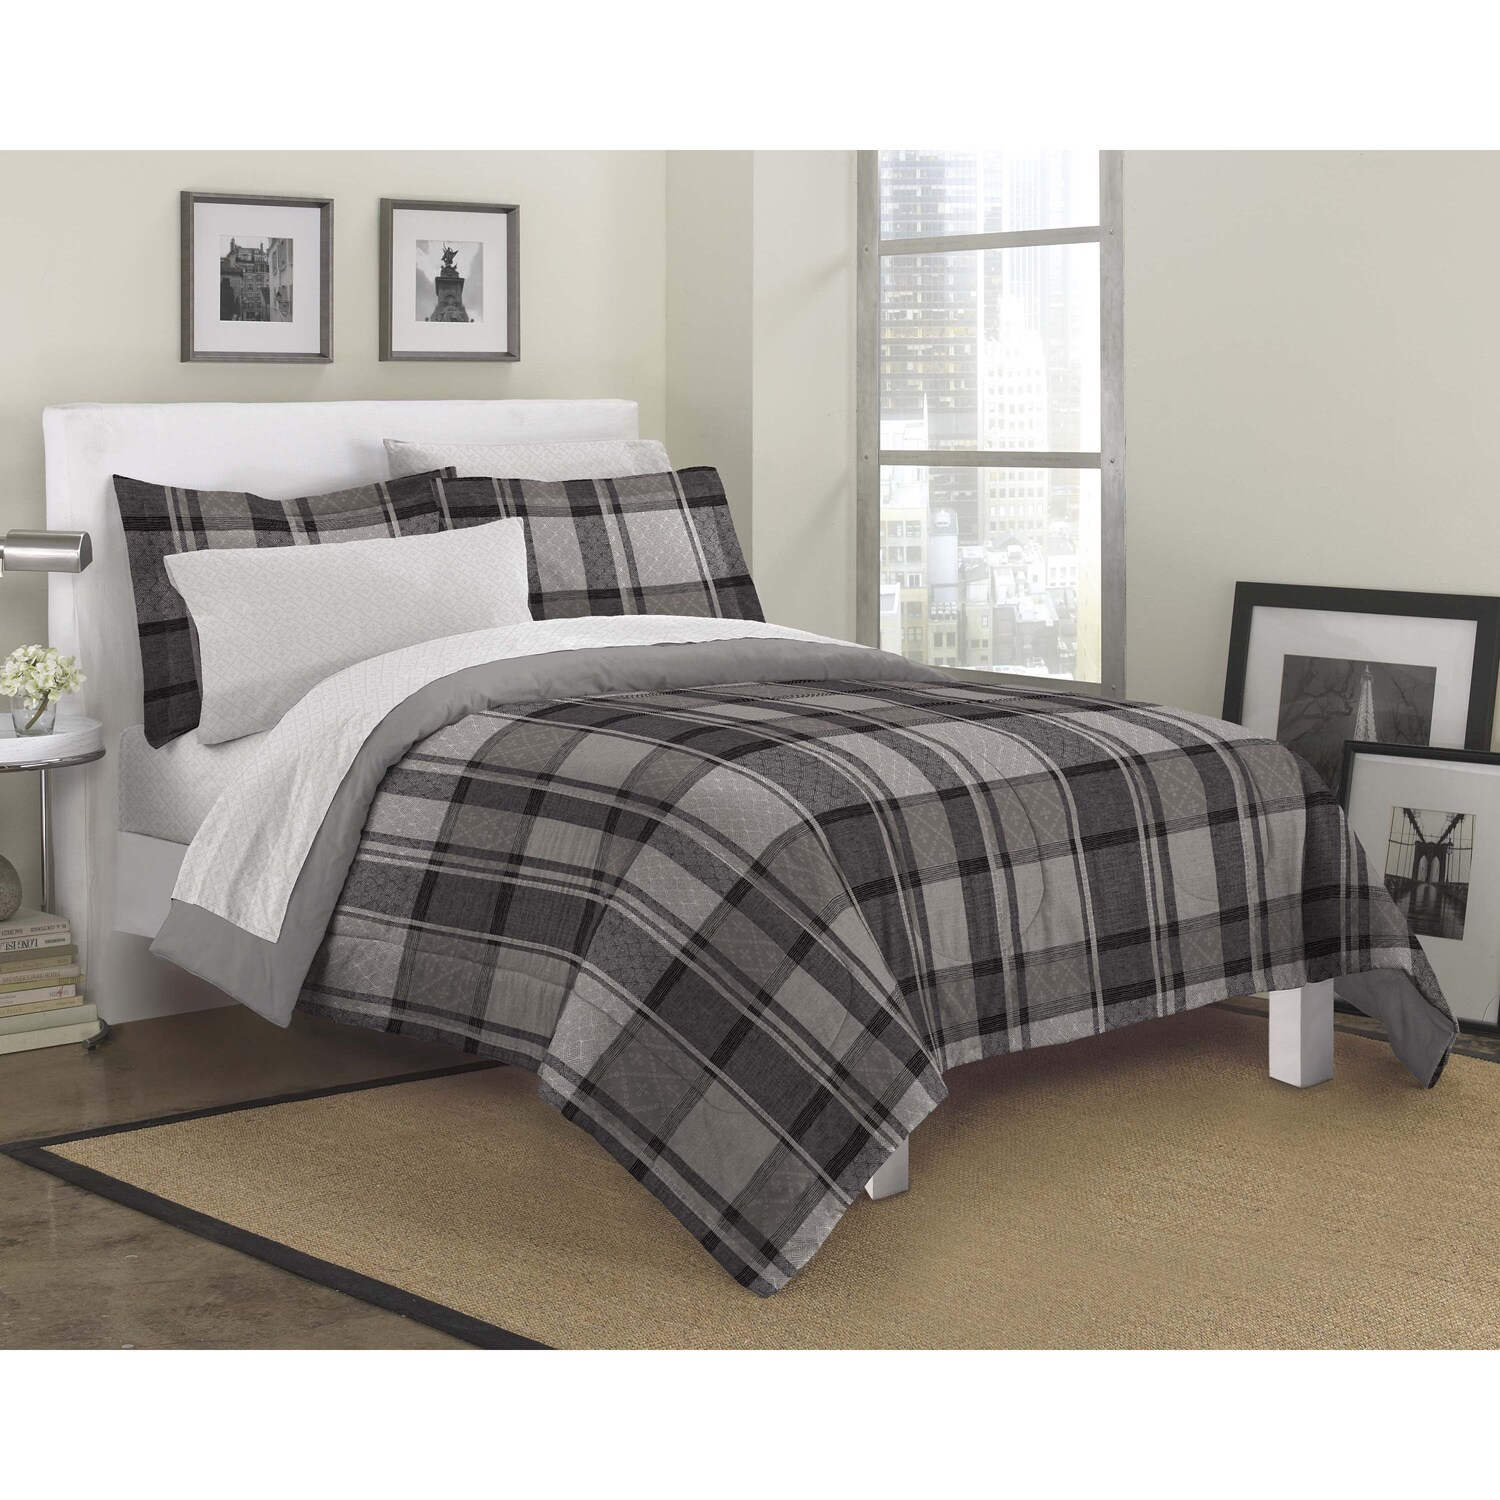 Ultimate Plaid 7 piece Bed in a Bag with Sheet Set Free Shipping